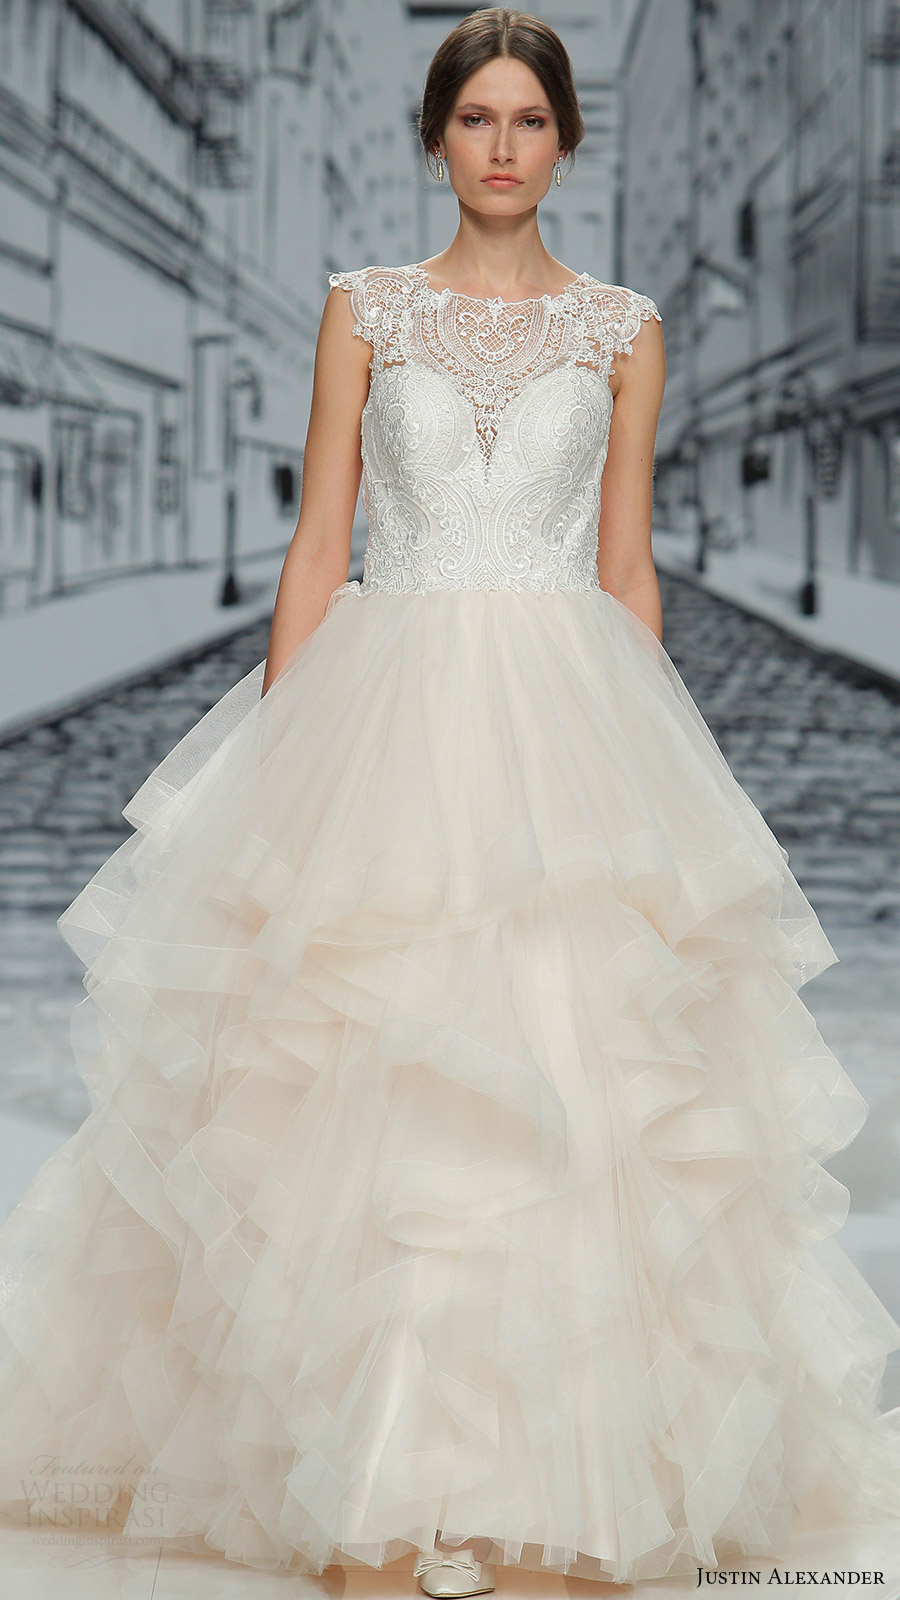 justin alexander spring 2017 cap sleeves jewel neck lace bodice ball gown wedding dress (8888) mv layered skirt